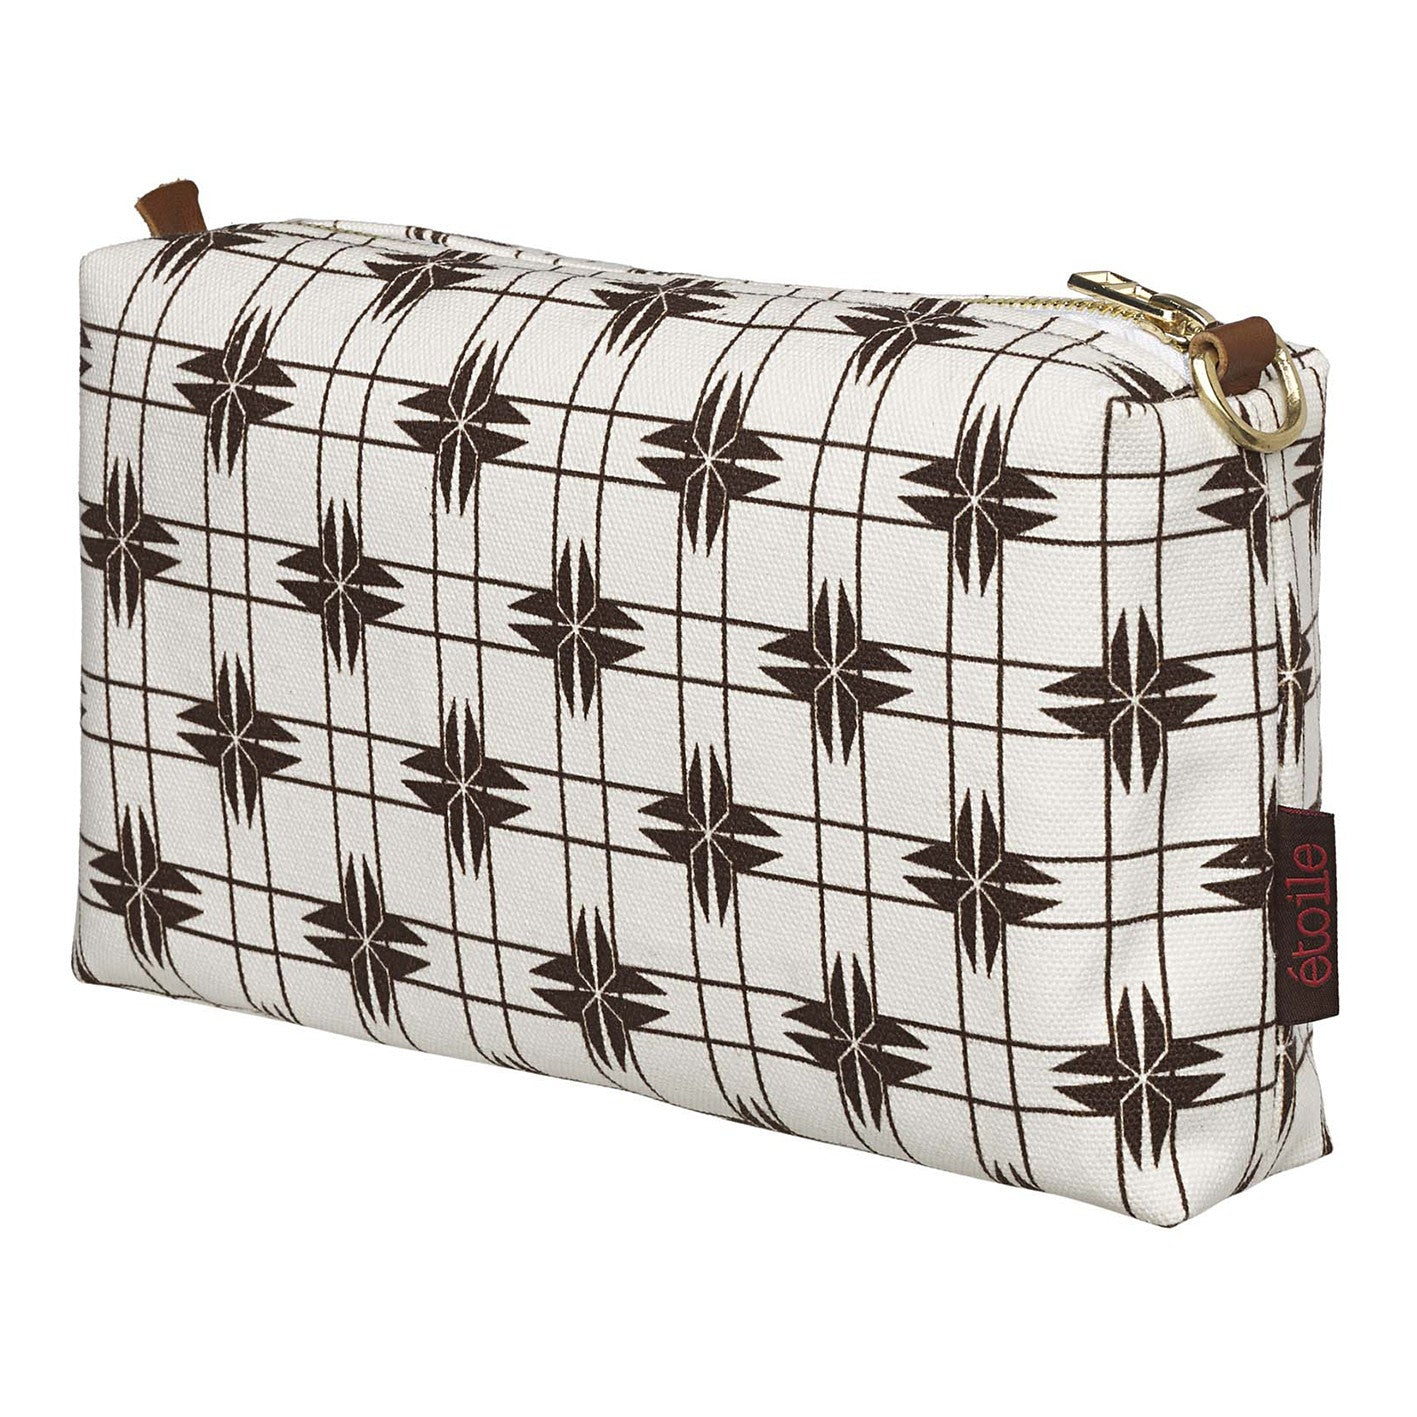 Pueblo Geometric Pattern Canvas Wash or toiletry travel Bag - Chocolate Brown - Perfect for all your cosmetic or beauty needs while travelling Ships from Canada (USA)